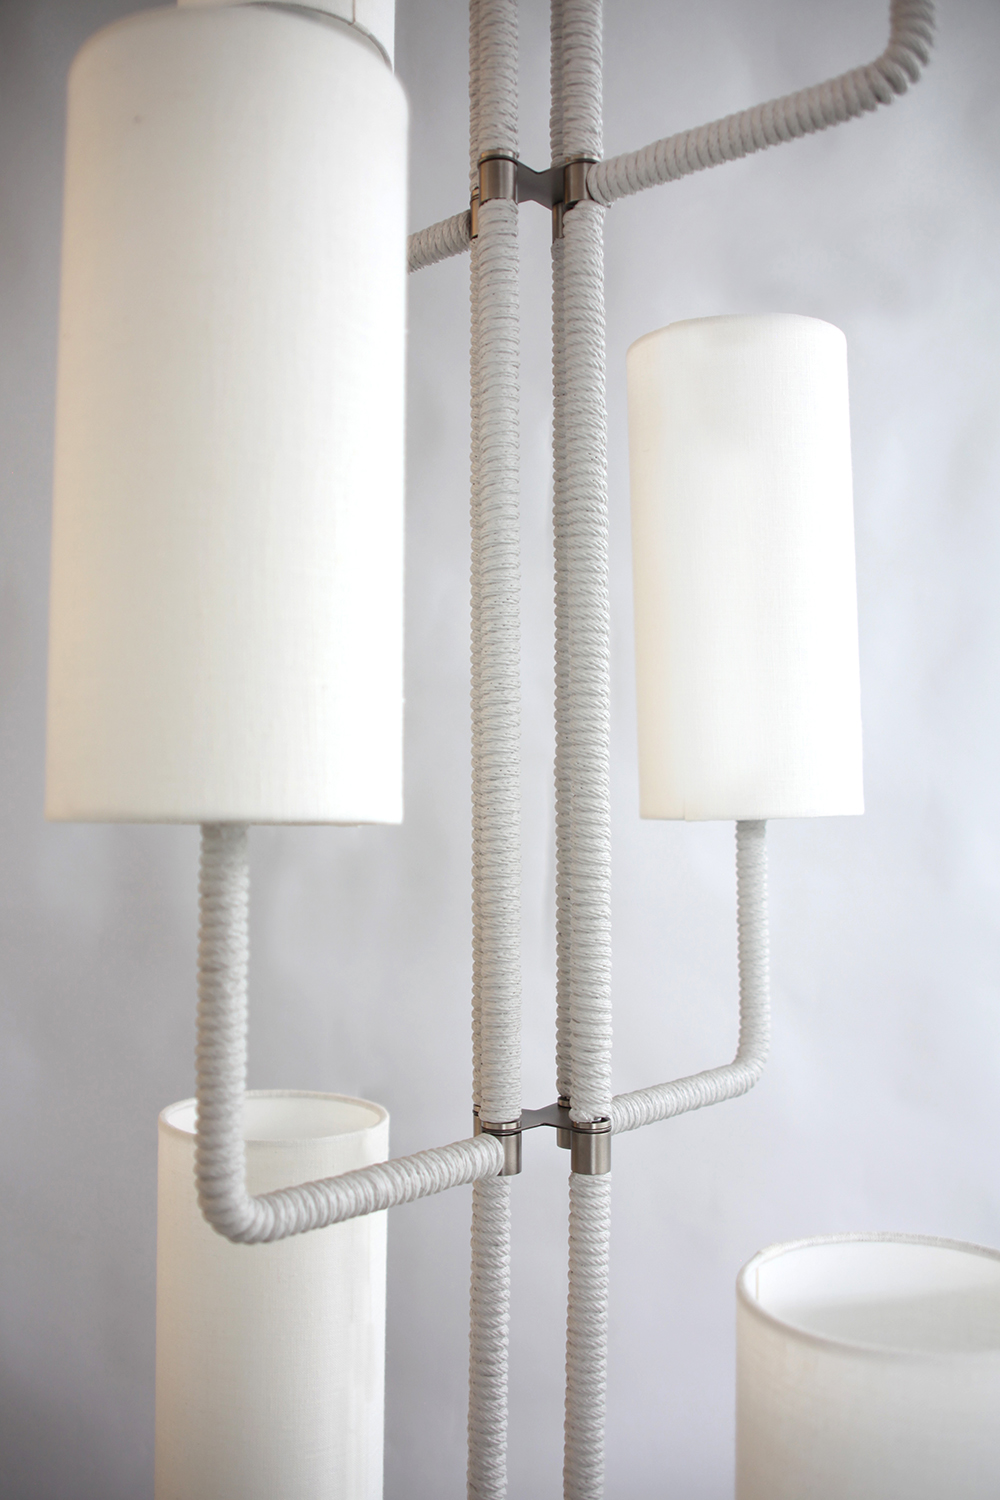 Rope_C-183_Vertical Rope Chandelier with 8 Shade_Satin Nickel_Gray_White_close up.jpg